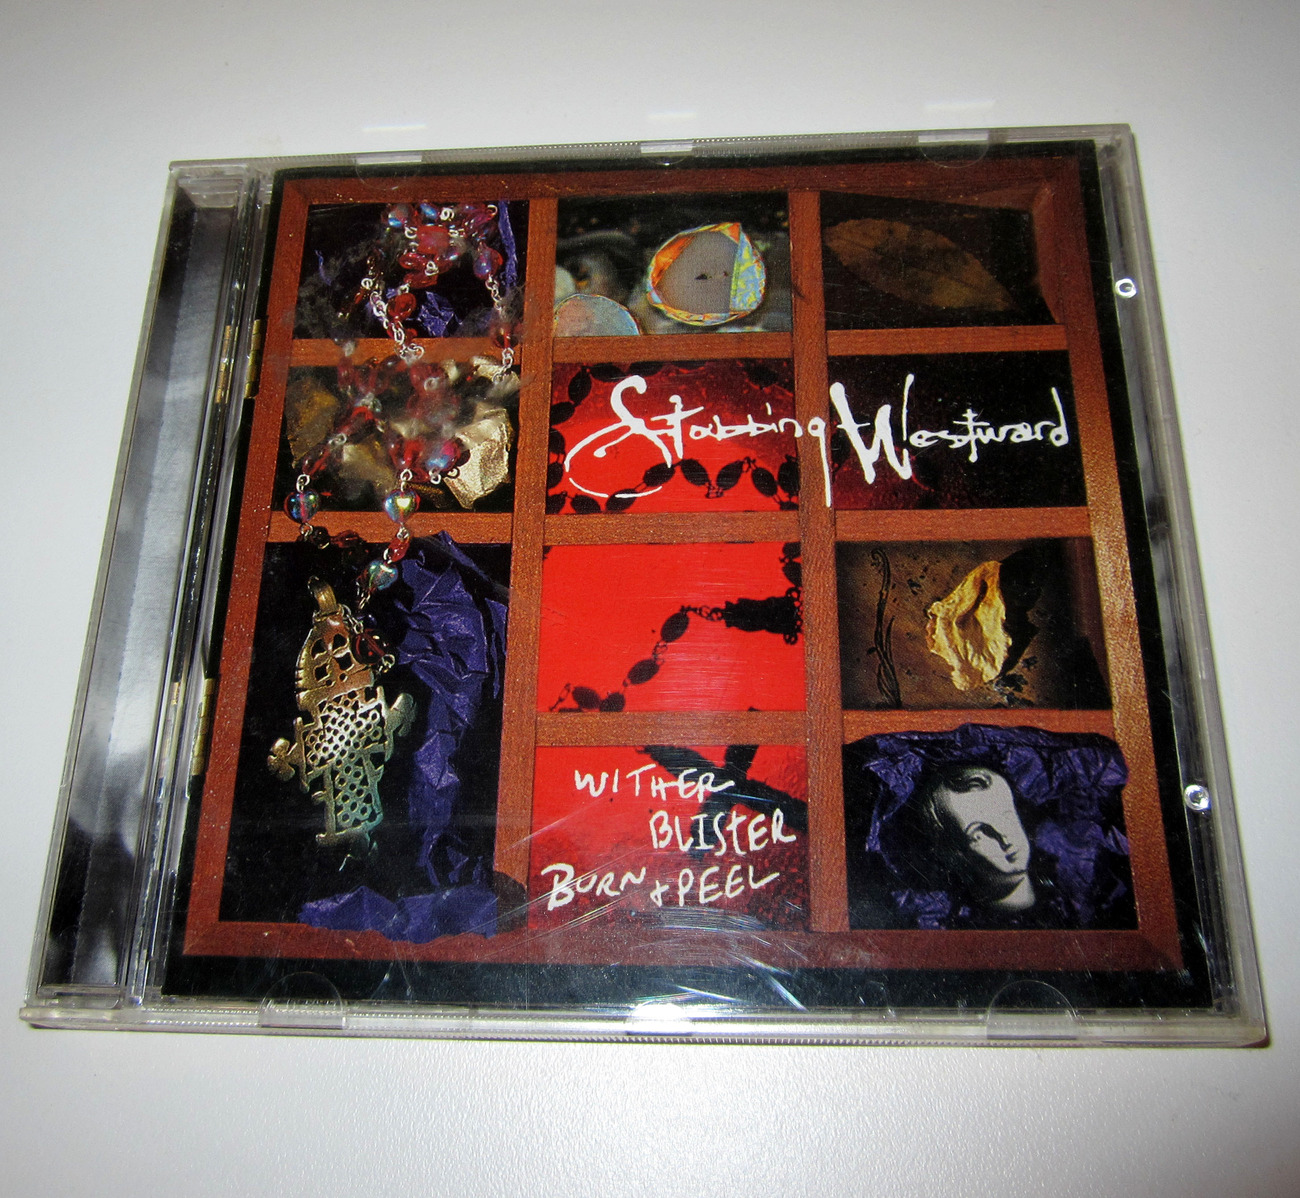 CD Wither Blister Burn & Peel by Stabbing Westward (c) 1996